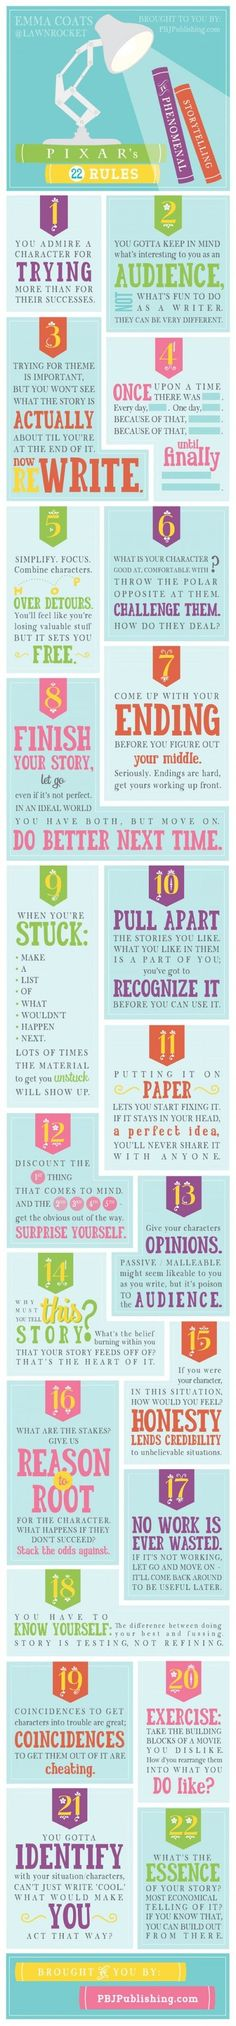 Pixar has become as famous for their storytelling chops, and their ability to create funny, inspiring tales that appeal to all audiences, as they are for digital animation.    So we were thrilled when storyboard artist Emma Coats tweeted a few of the company's key ingredients to storytelling, useful for all aspiring writers.